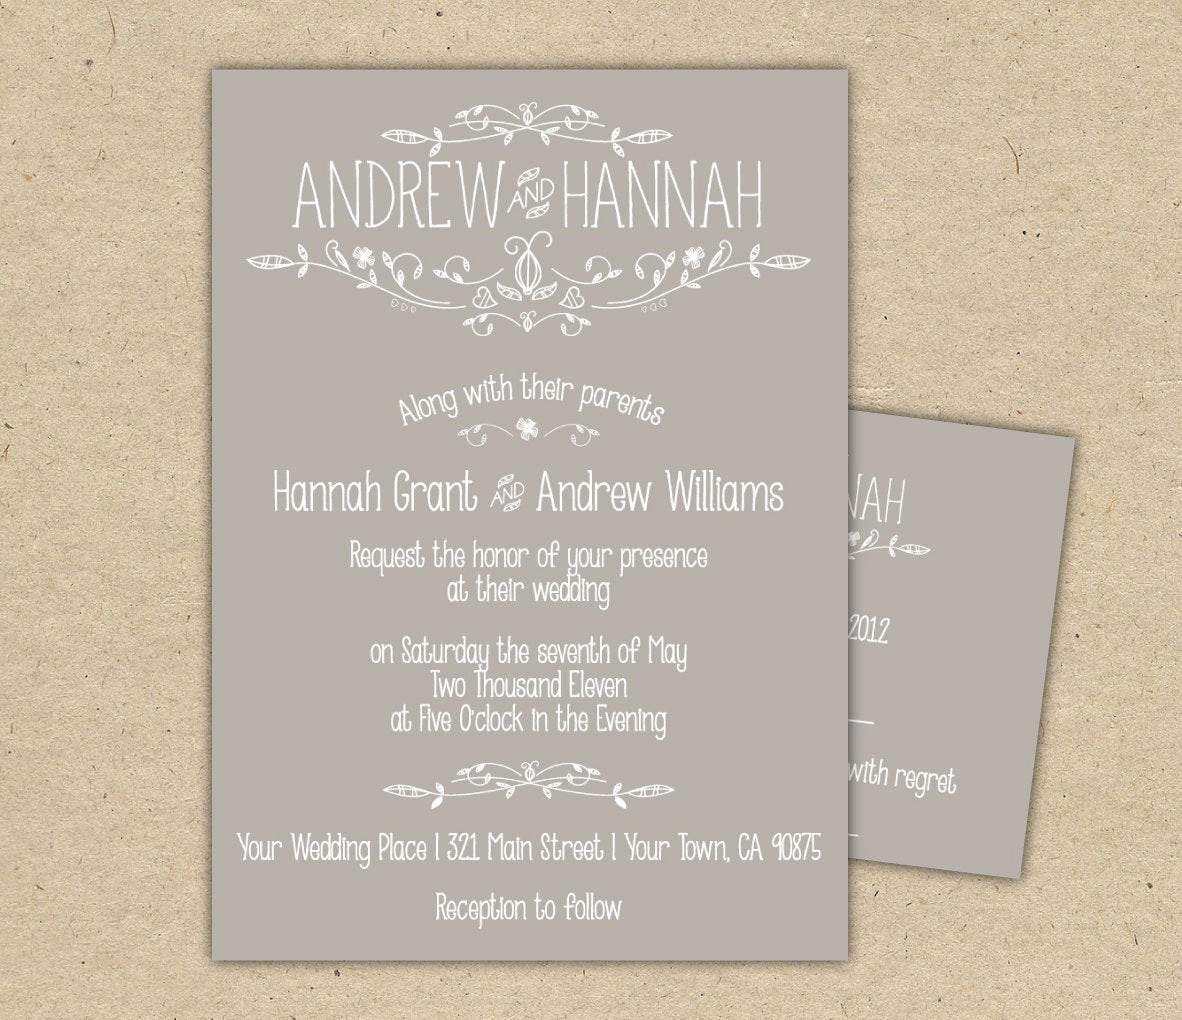 Rsvp Wedding Invitation Wording Fresh Vintage Wedding Invitation and Rsvp P R I N T E D Country